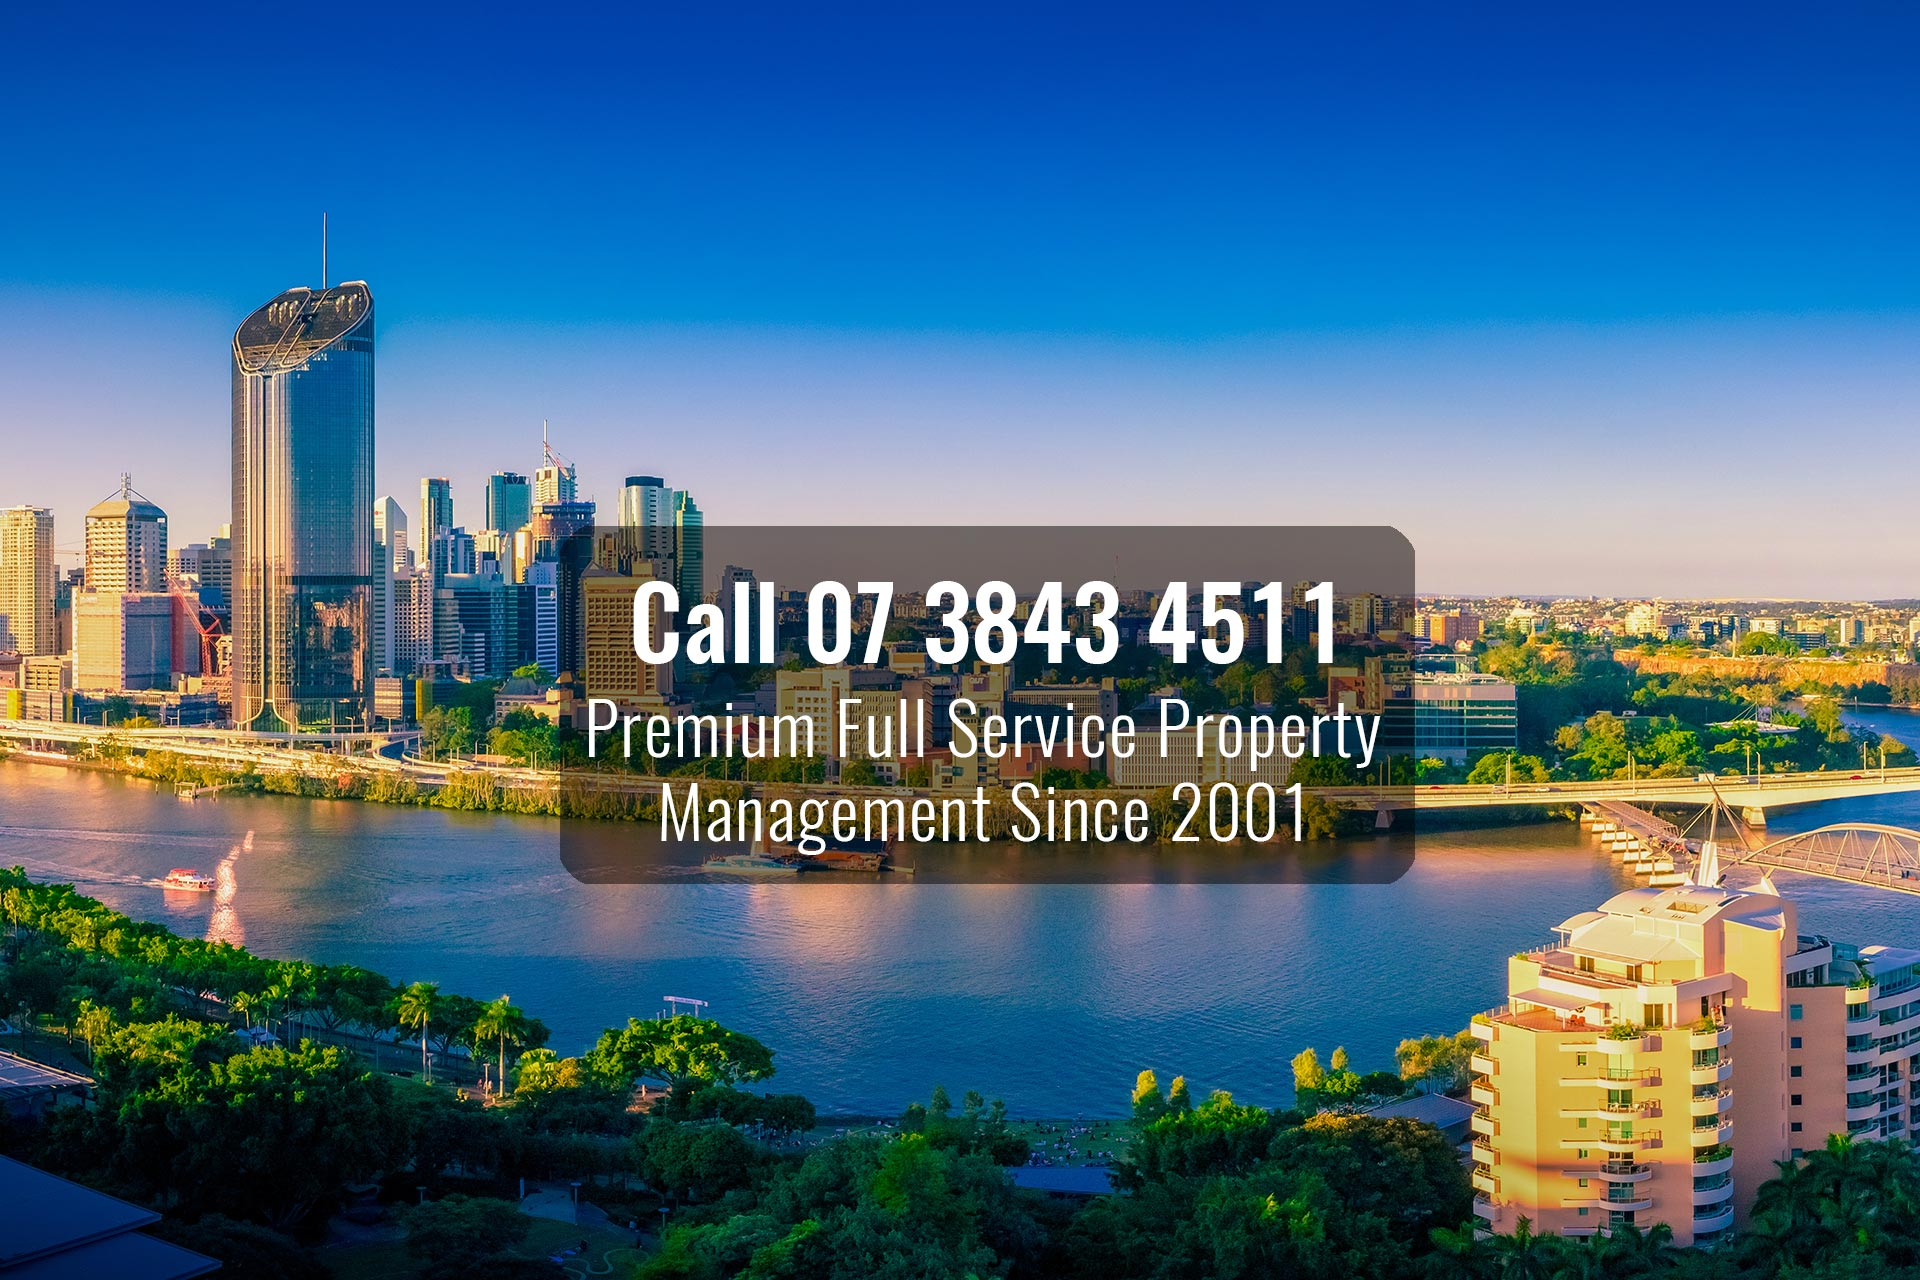 Full Service Property Management Since 2001